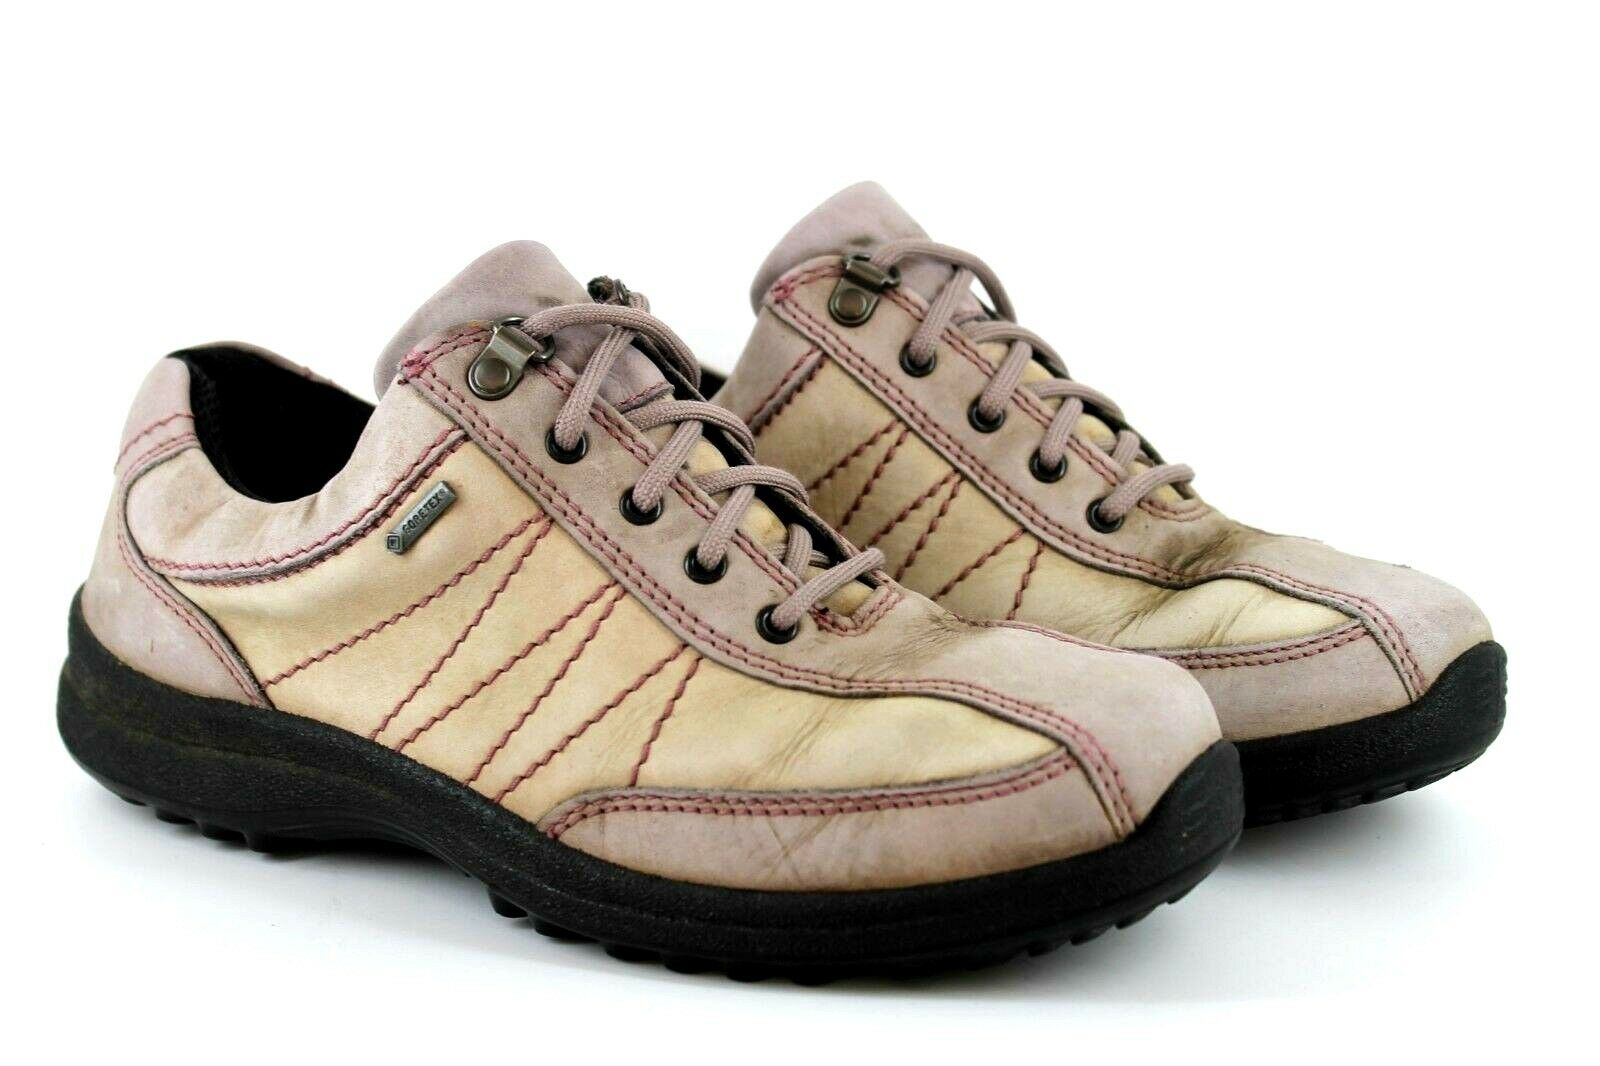 Hotter Womens UK 6 STD Waterproof Gore-Tex Used Walking Hiking shoes Trainers